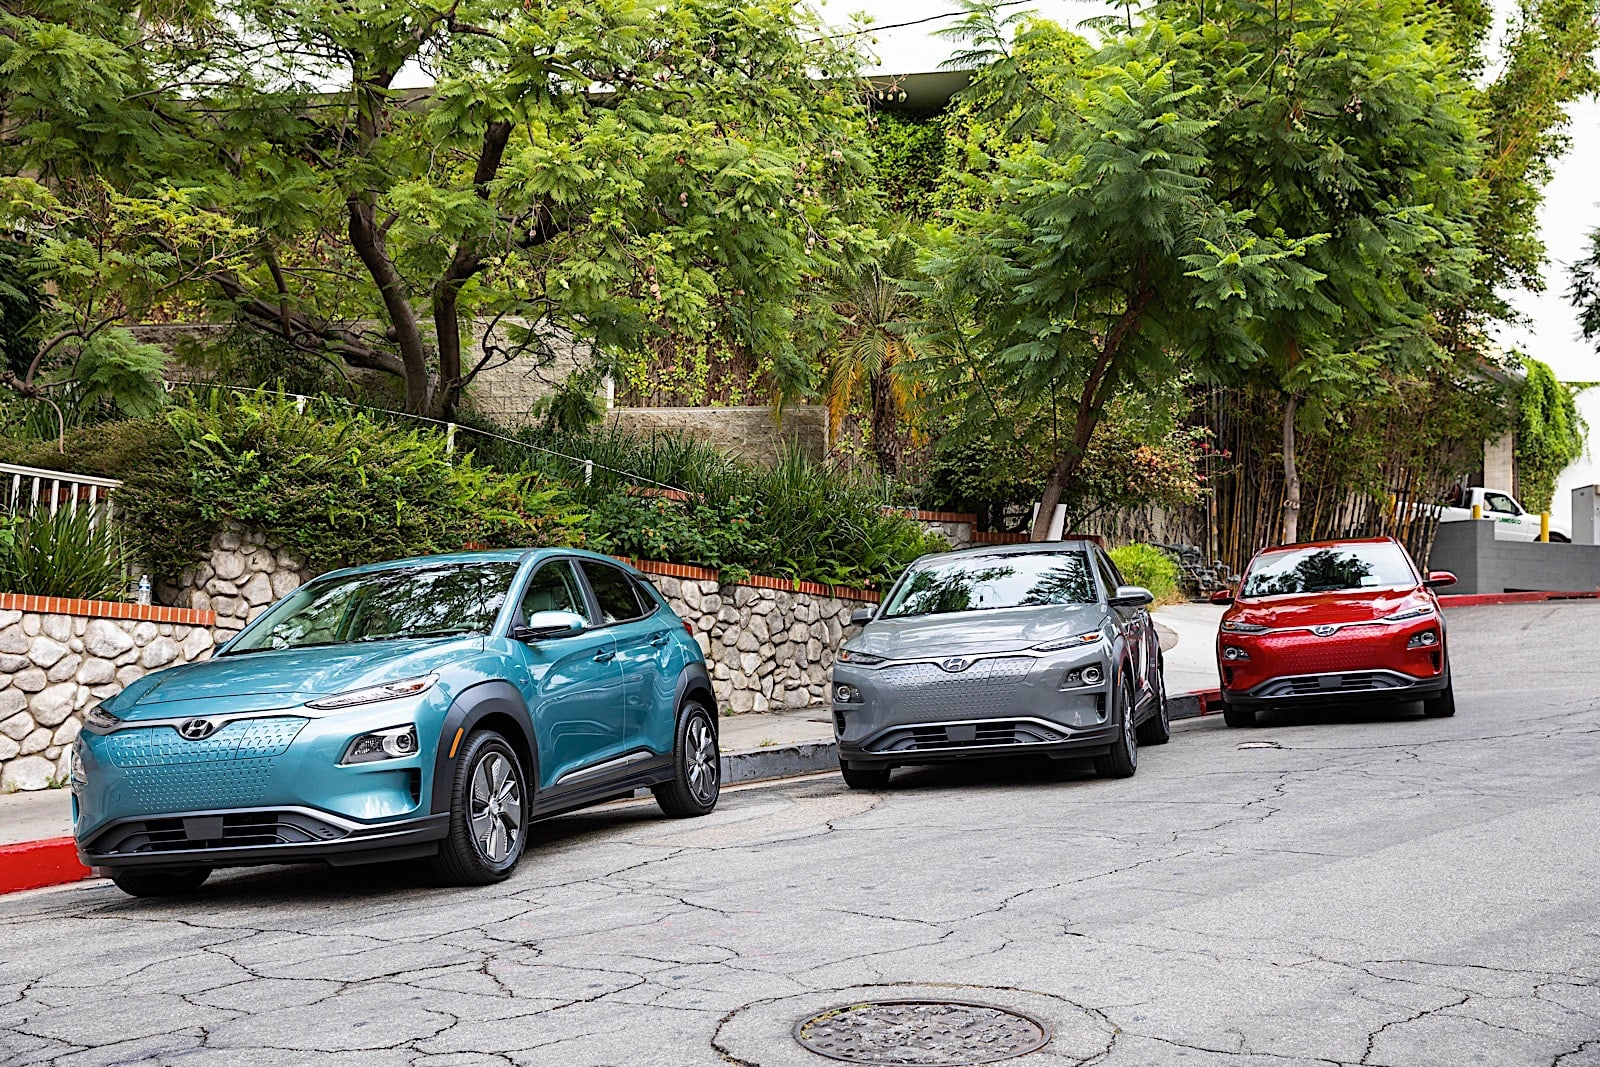 Hyundai's Kona Electric is ready to hit the road